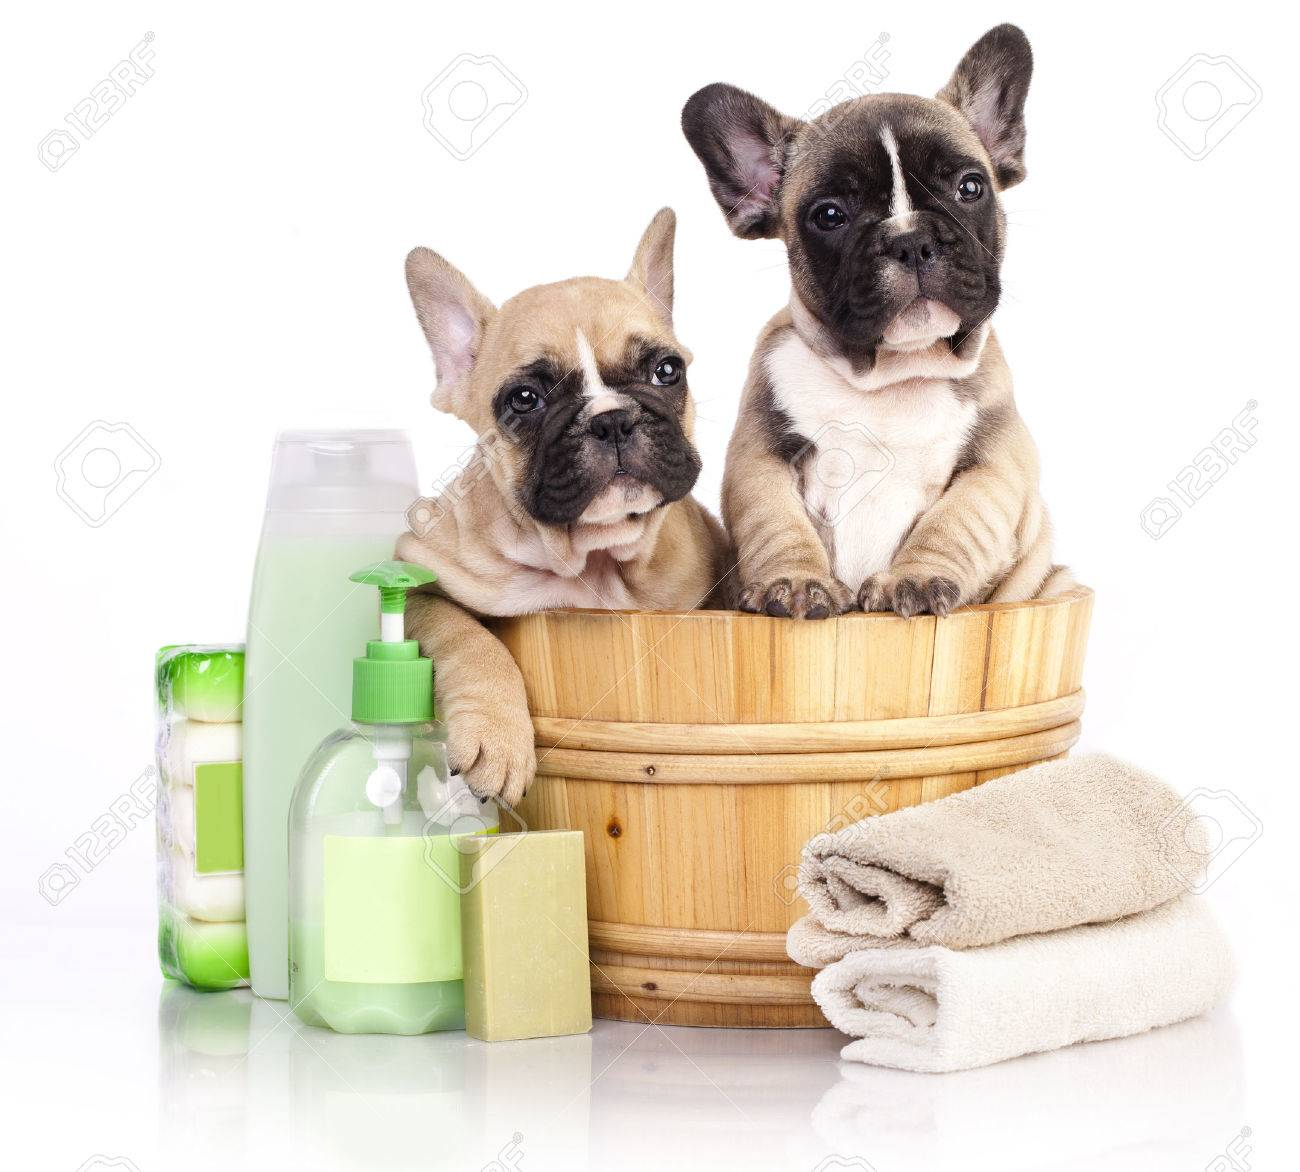 puppy bath time - French bulldog puppy in wooden wash basin with soap suds - 43958710